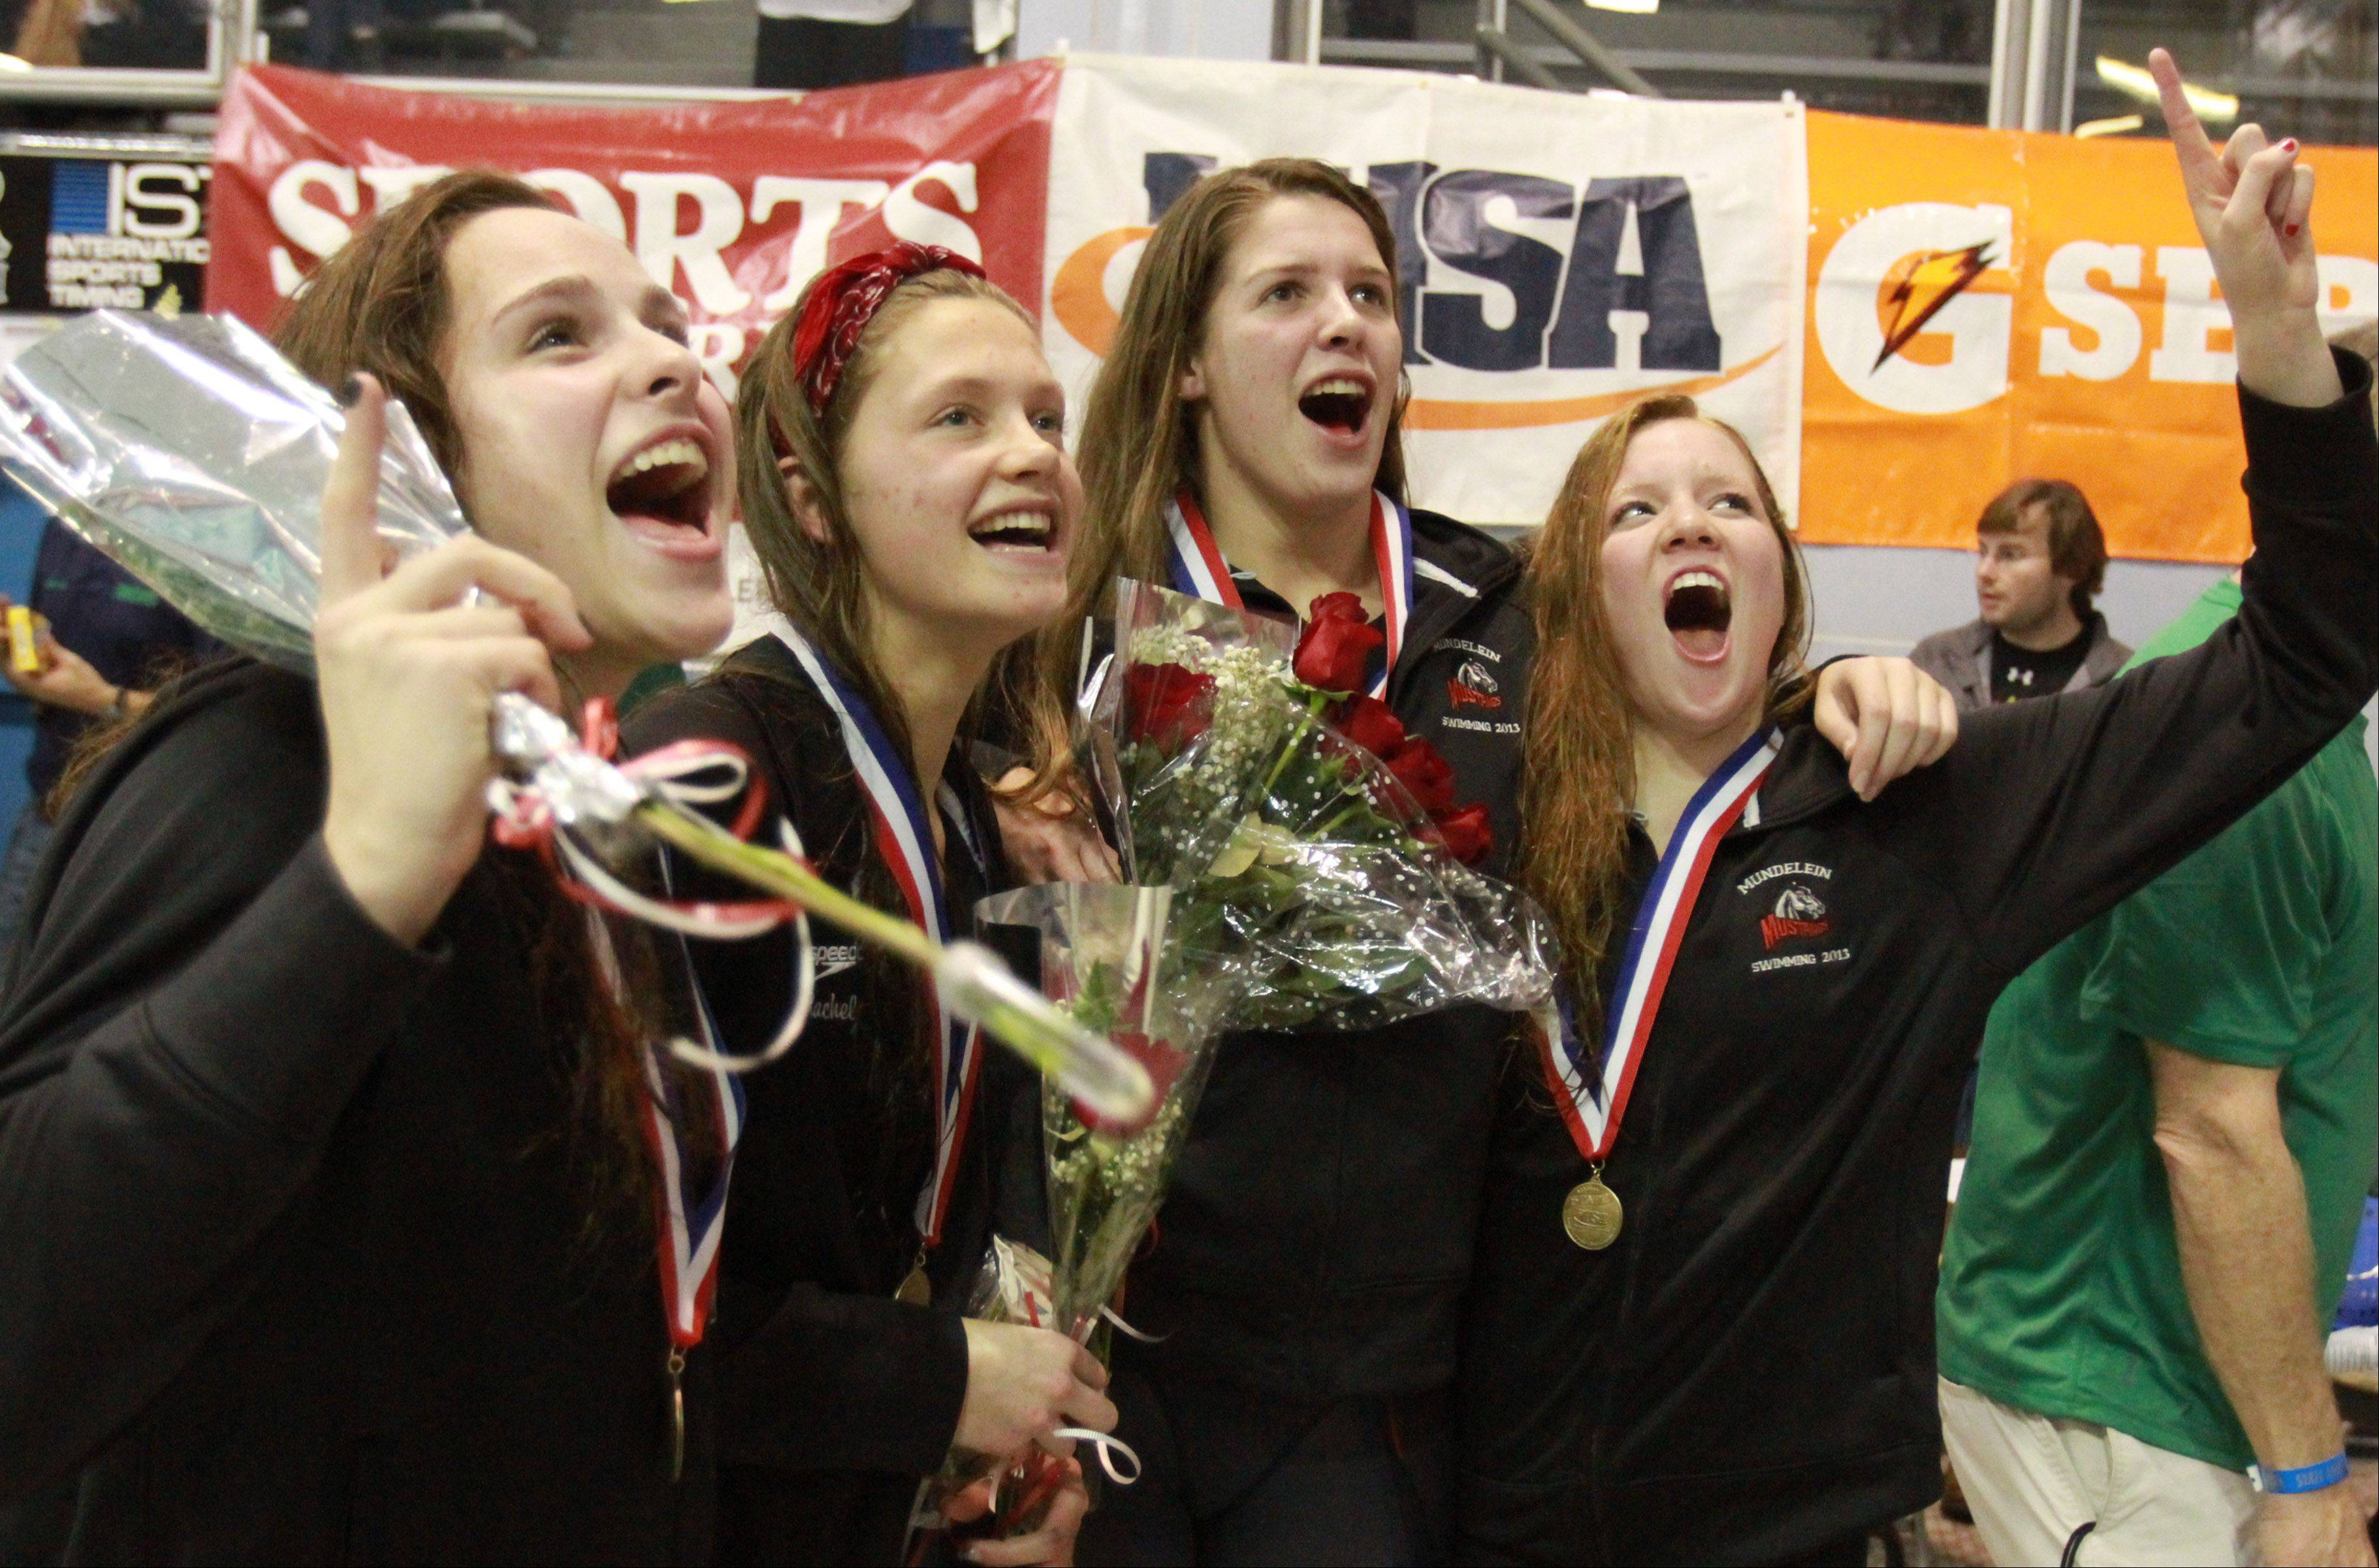 Mundelein's 200-yard freestyle relay team of Erin Falconer, Jennifer Kordik, Rachel Robb, and Karrie Kozokar celebrate their victory at the girls swimming state finals on Saturday in at New Trier.